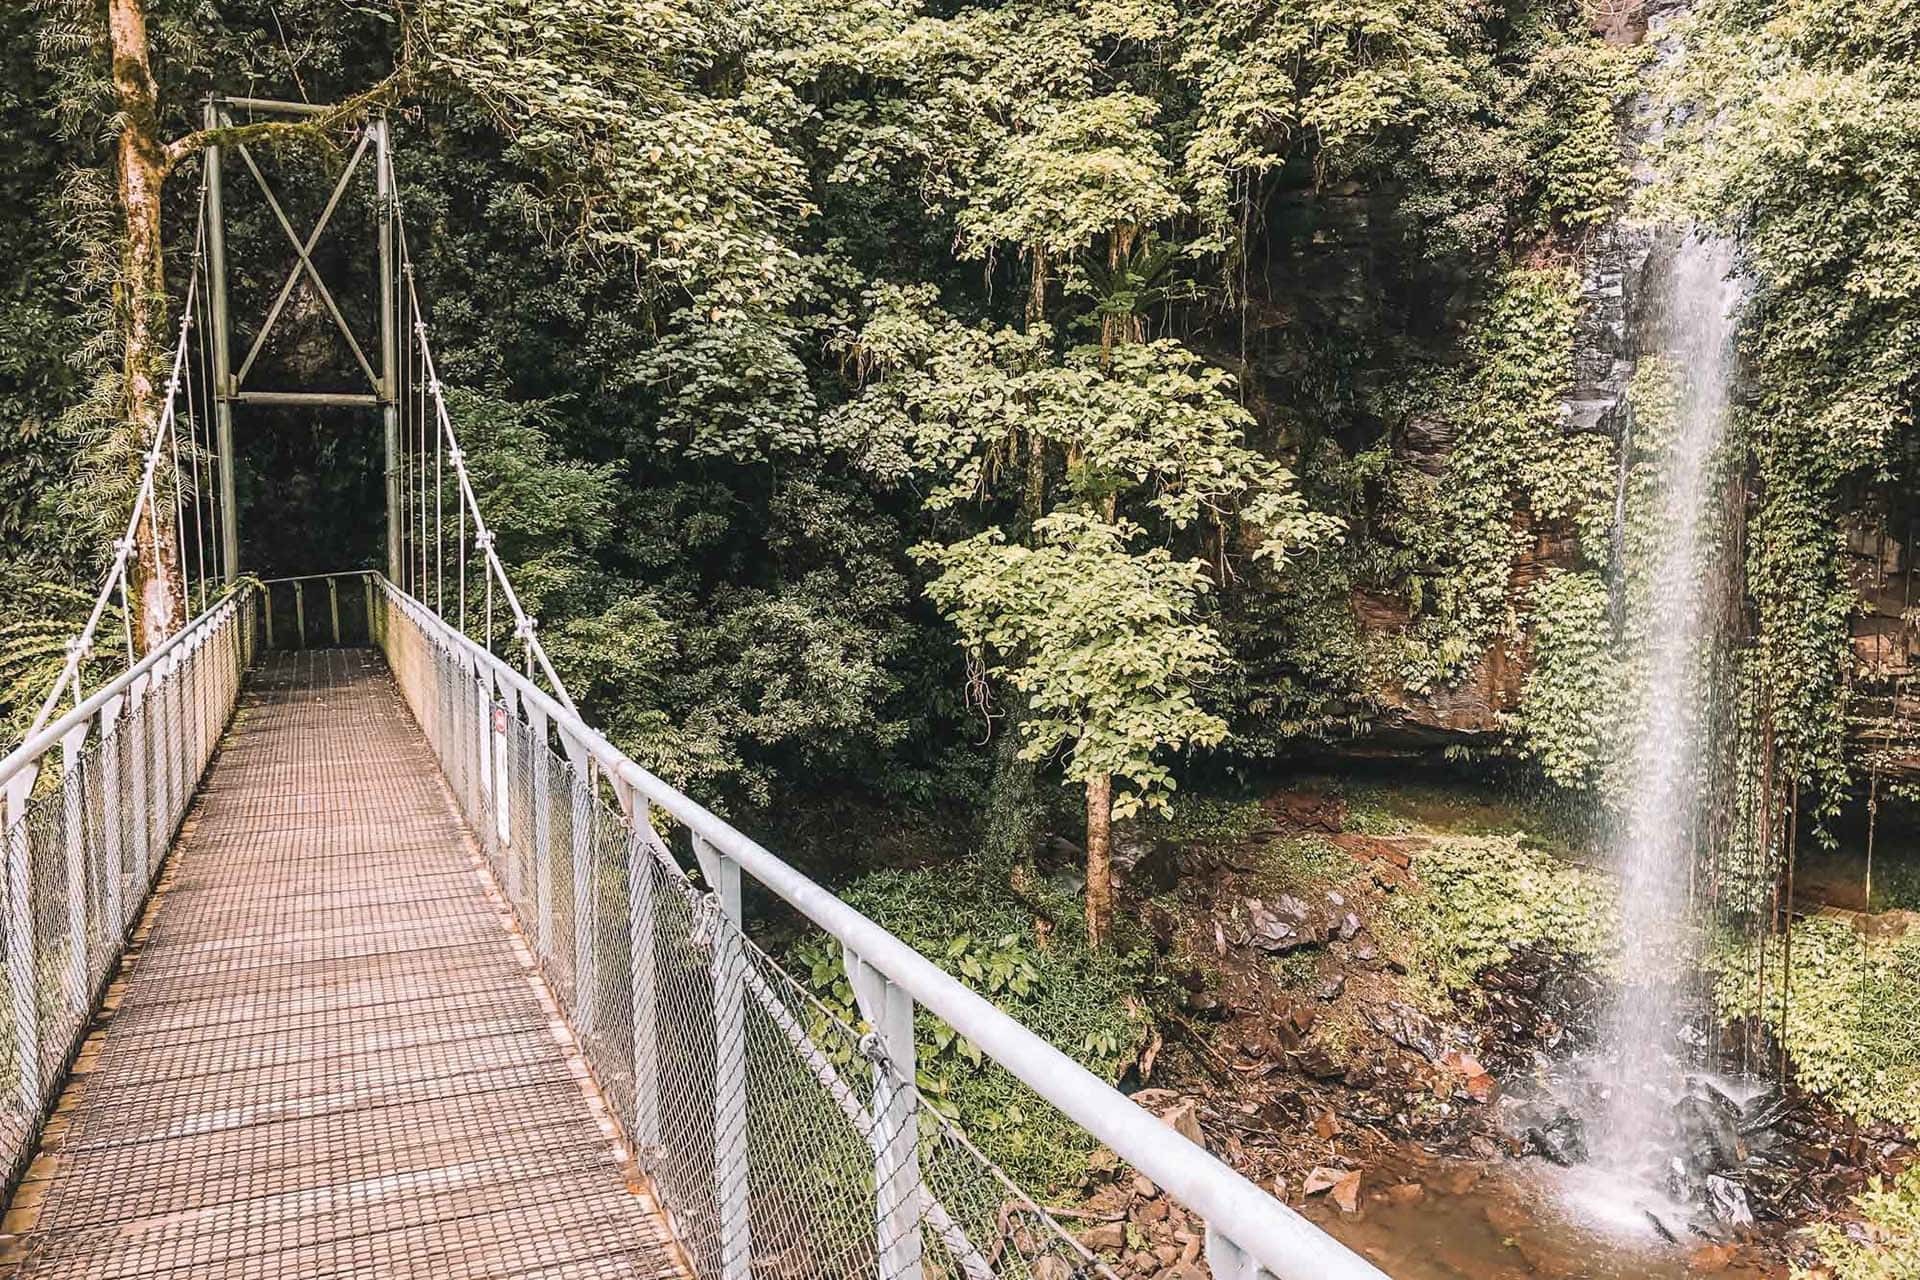 crystal-shower-falls-walk-dorrigo